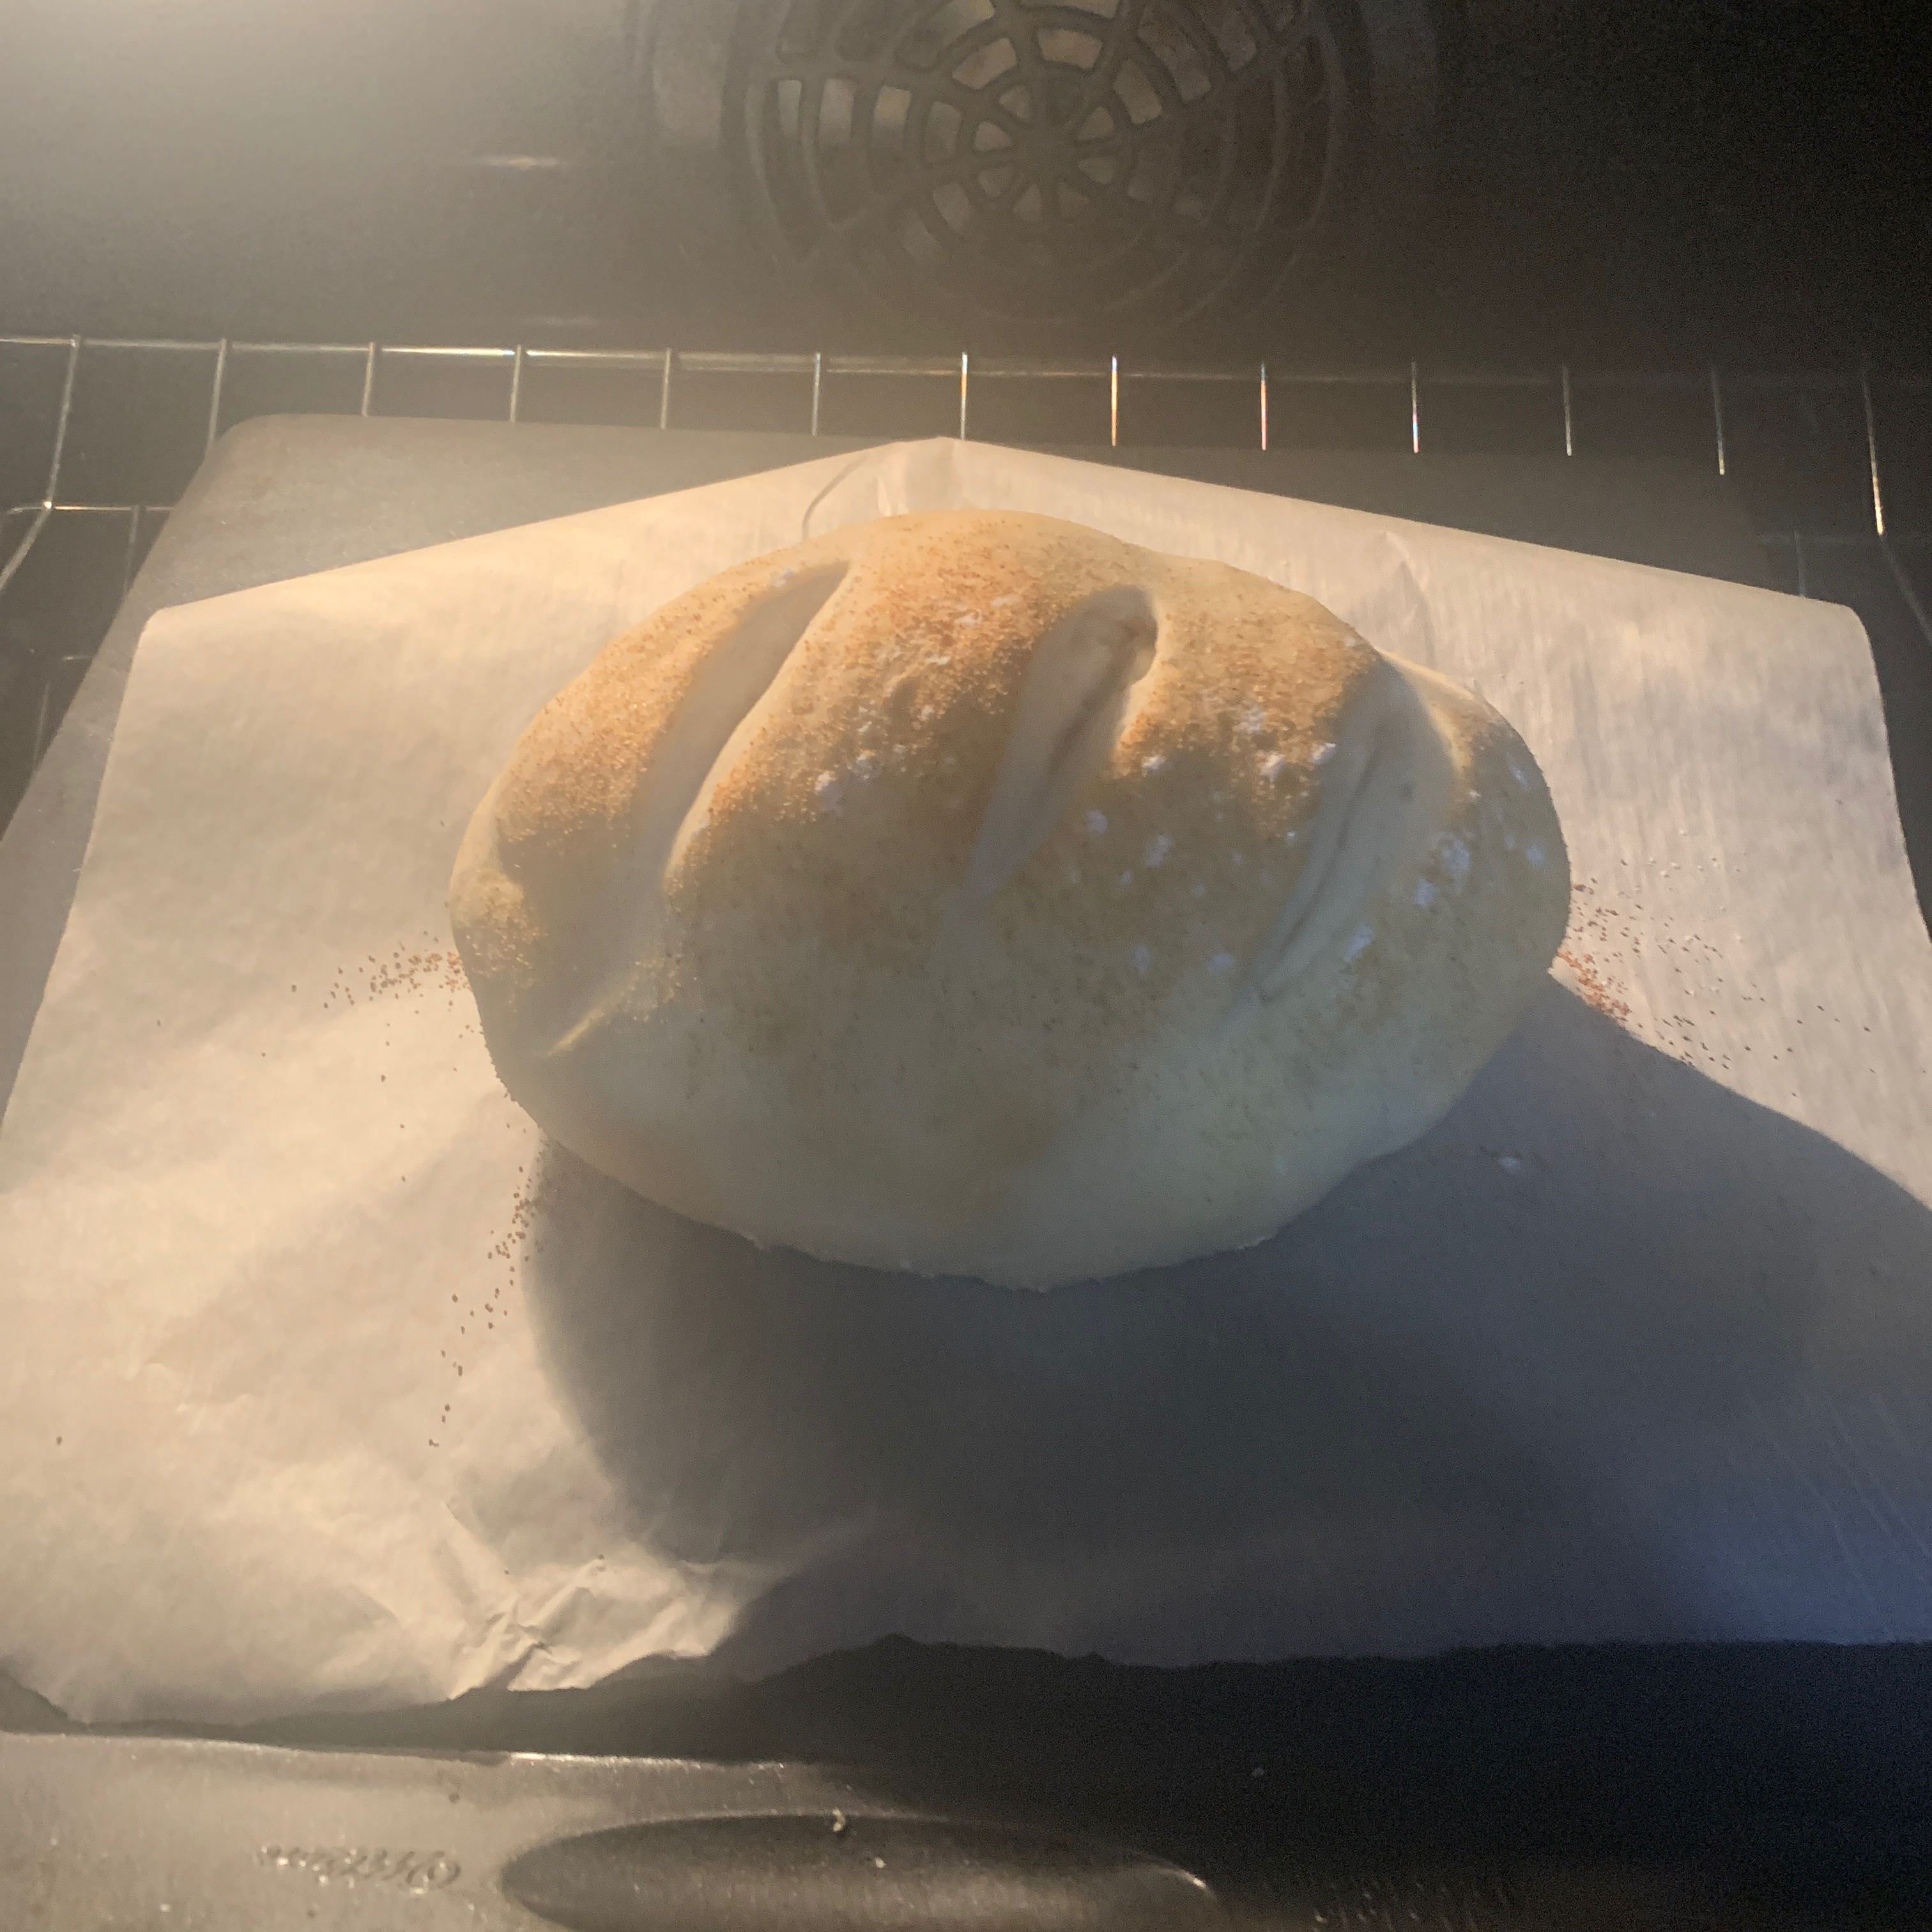 The French Bread